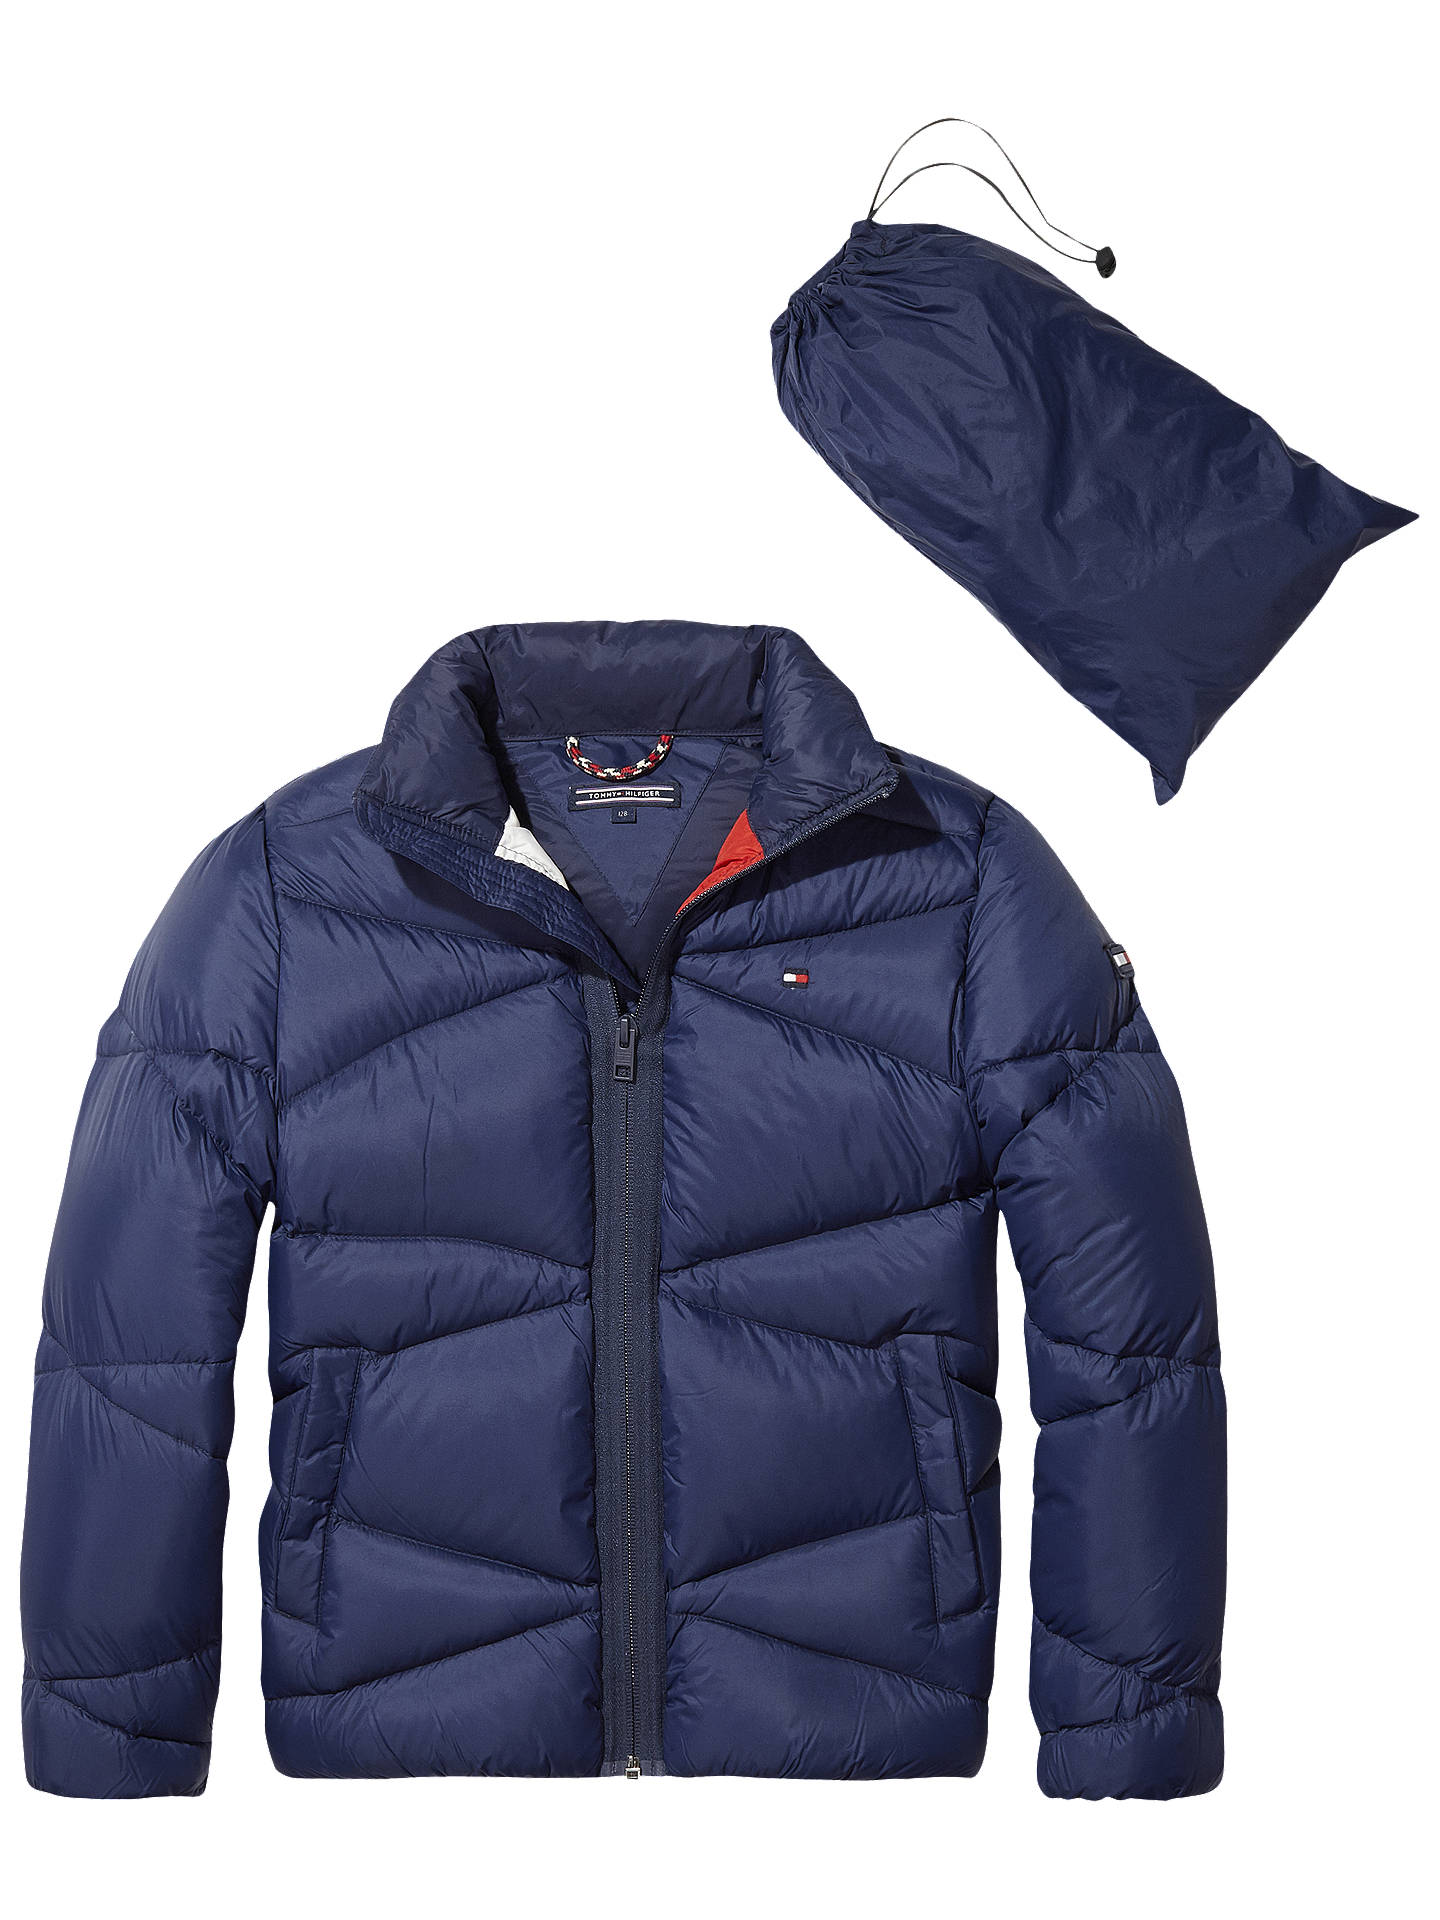 BuyTommy Hilfiger Boys  Pack Away Jacket, Blue, 7 years Online at johnlewis. dee93bf493